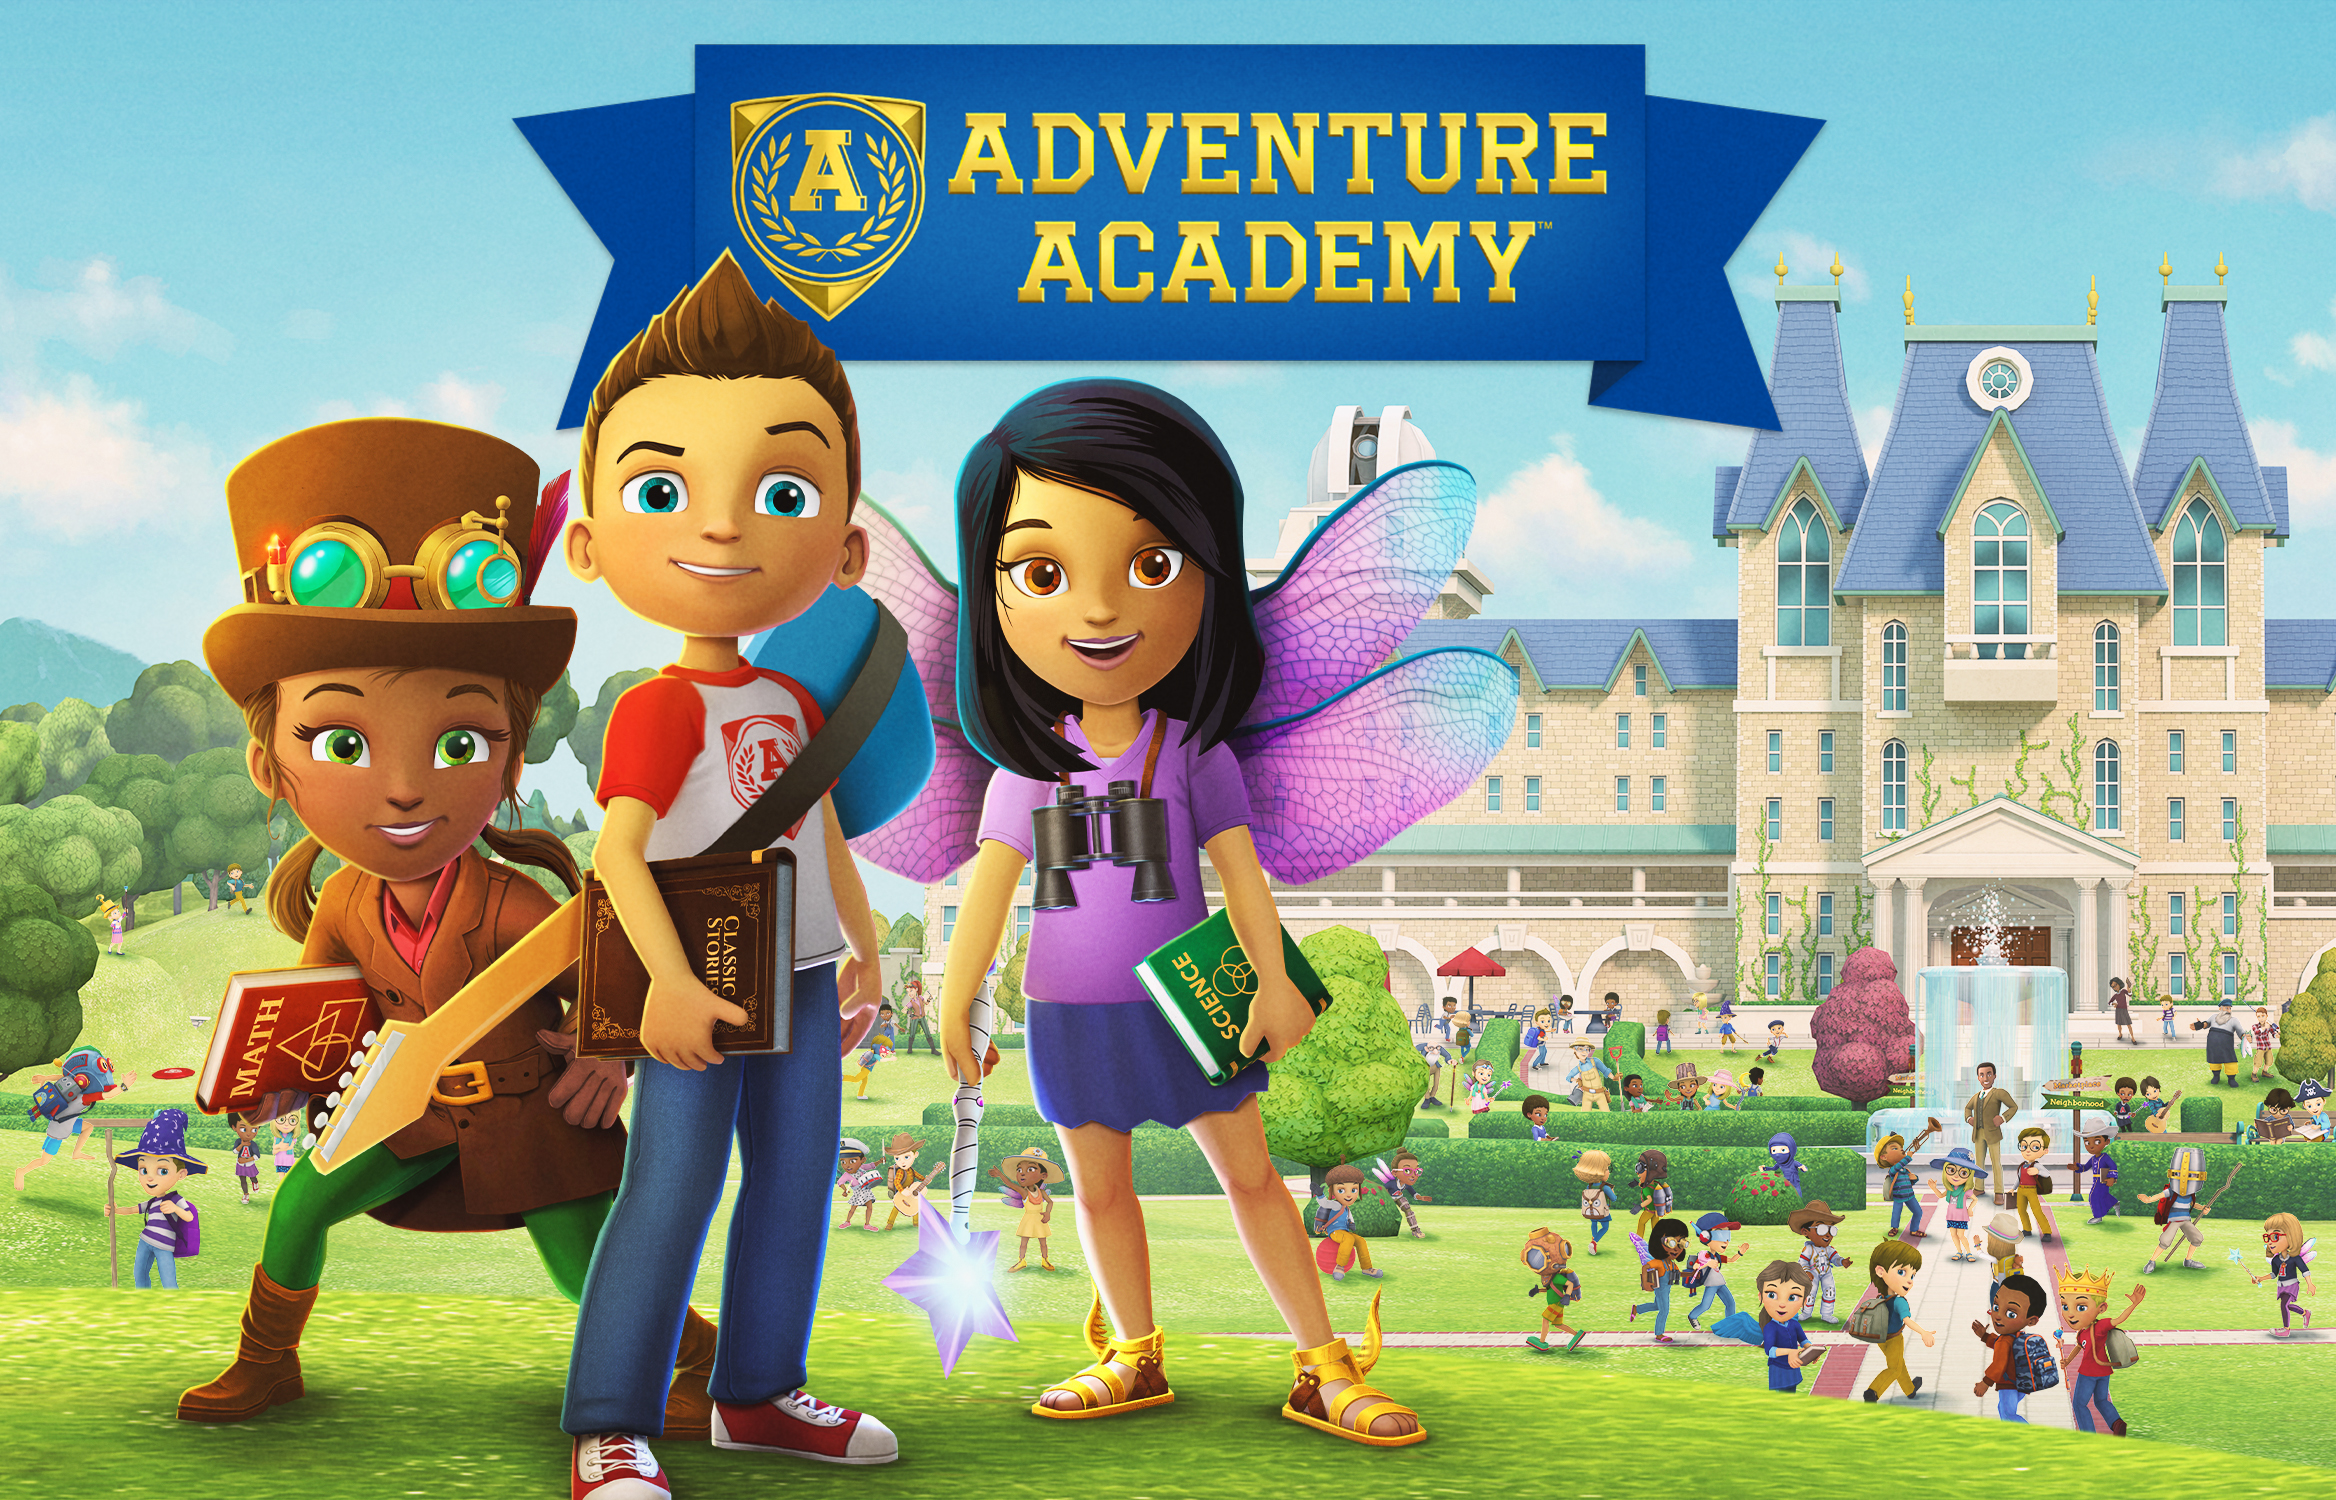 Adventure Academy: The educational MMO made by WoW, LOTRO devs